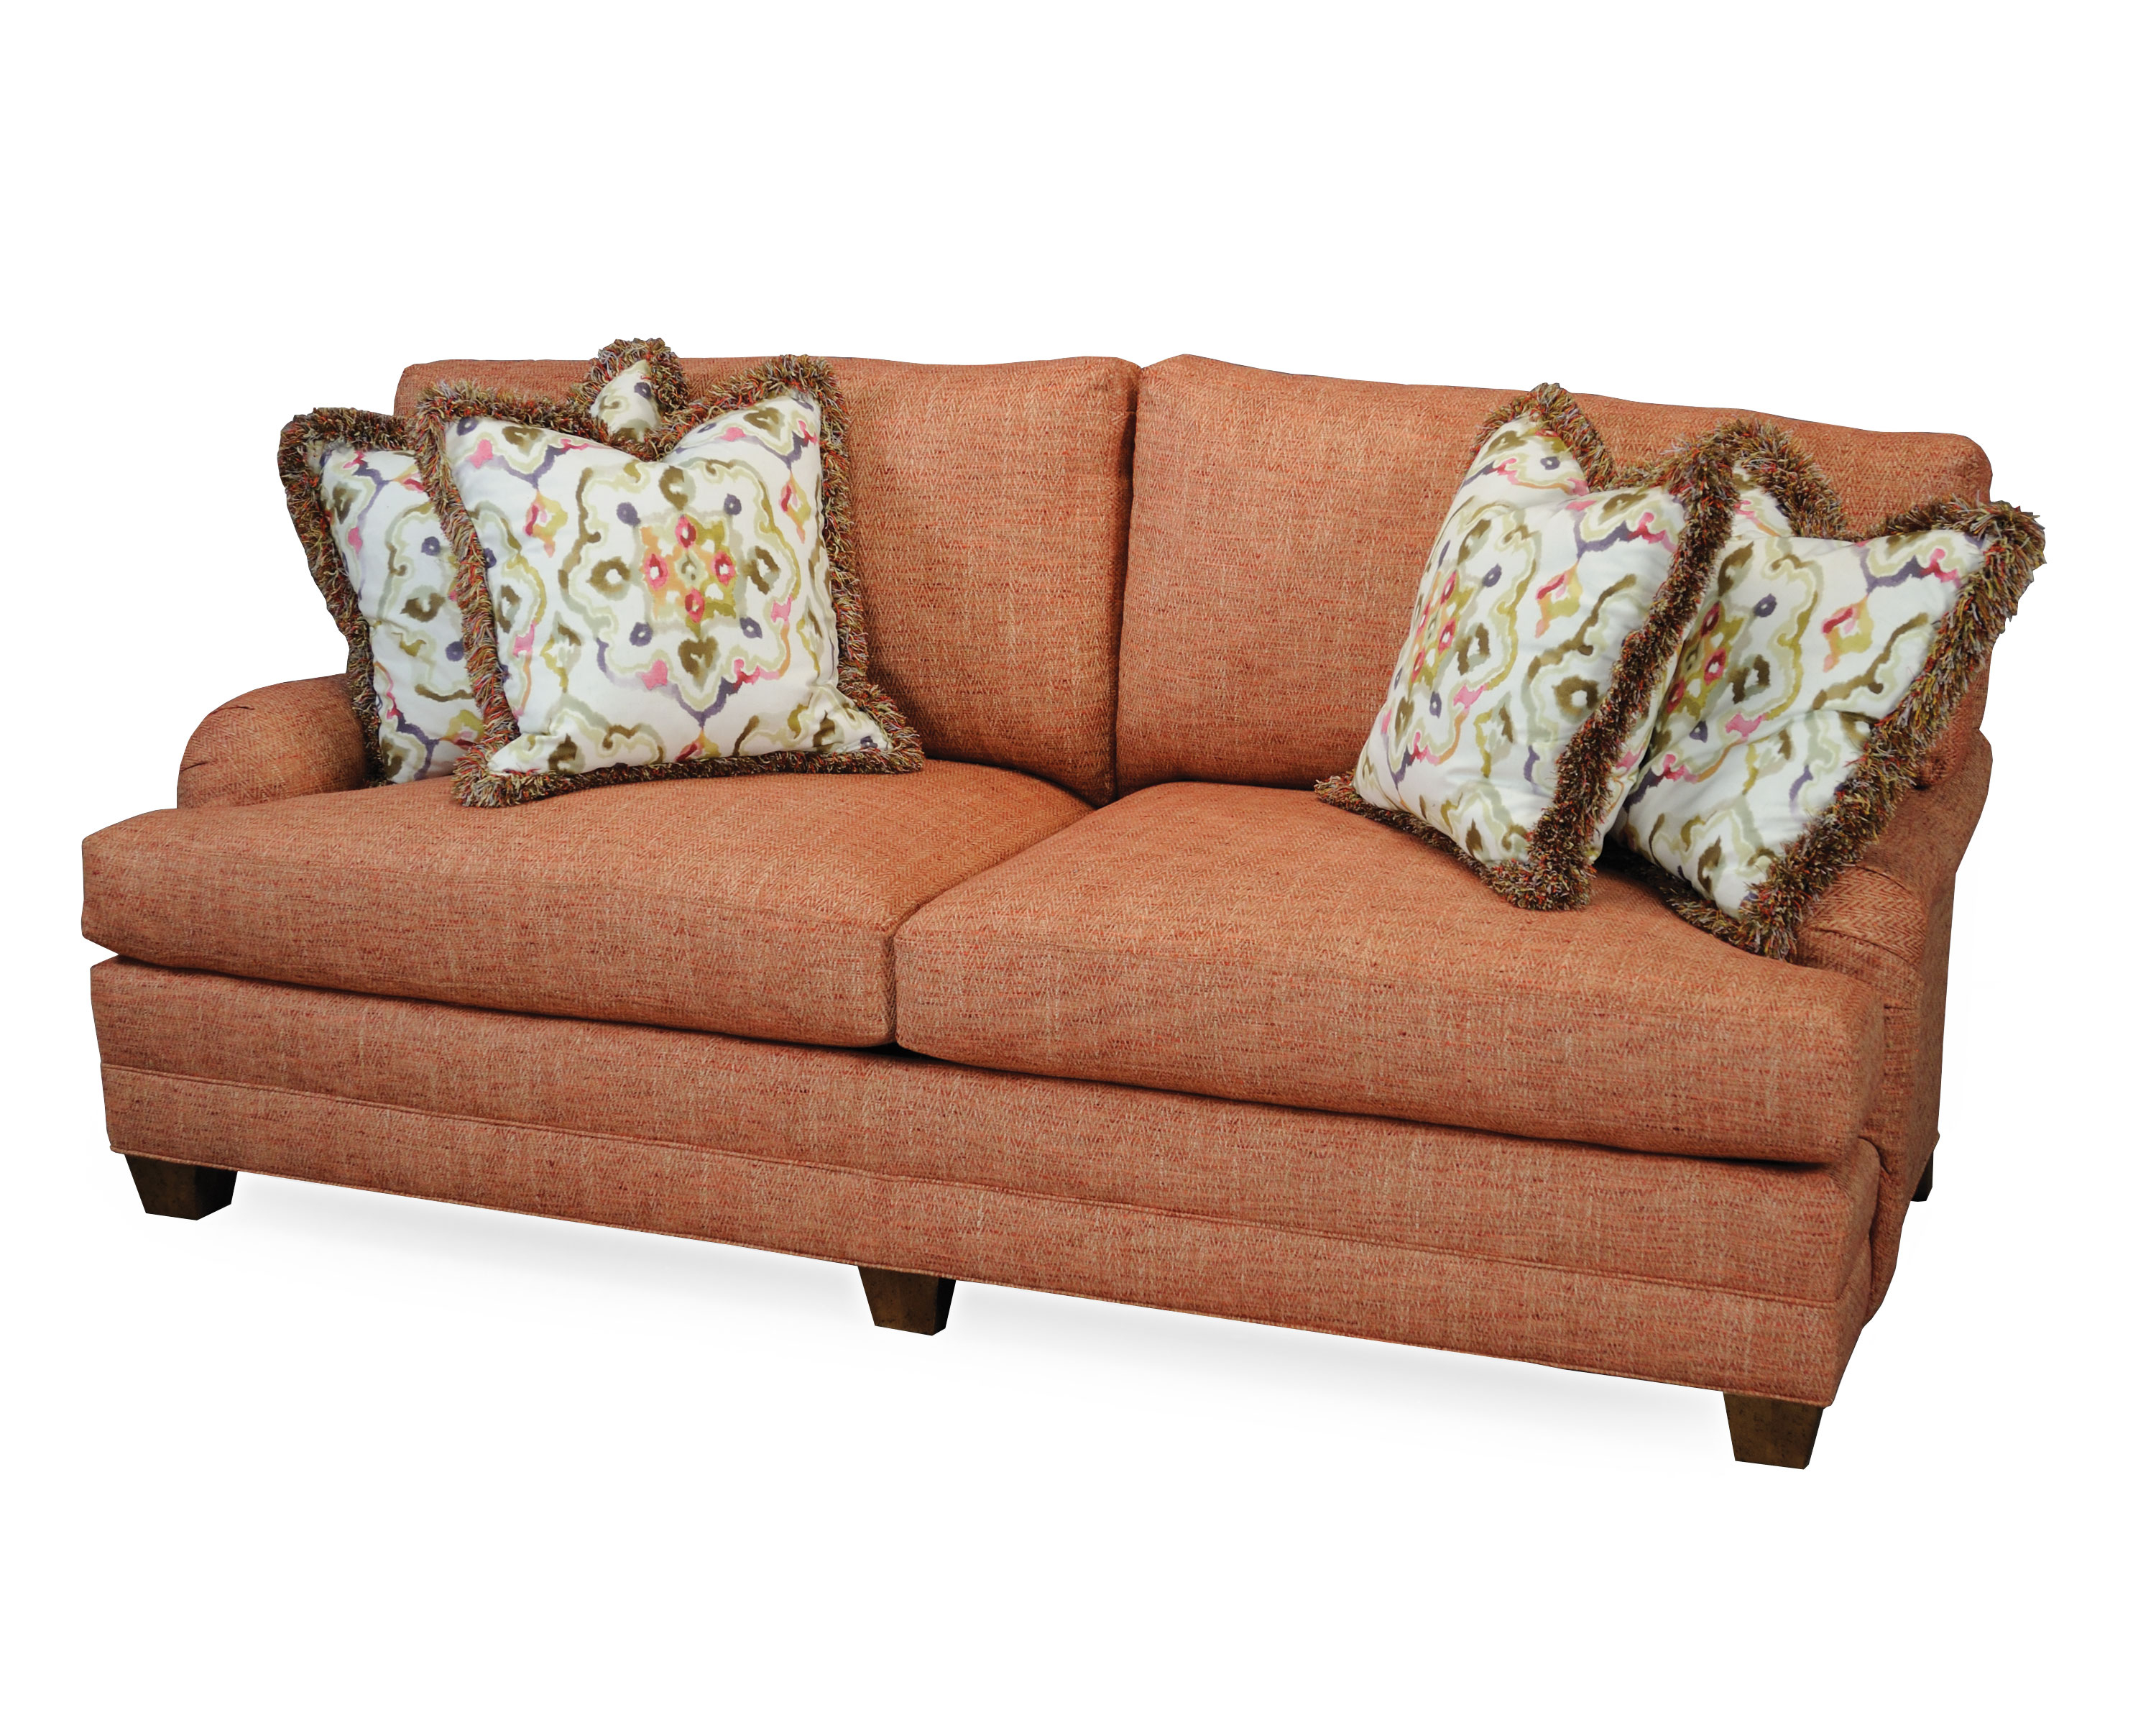 Stanford Furniture Intended For Well Known Abigail Ii Sofa Chairs (View 2 of 20)